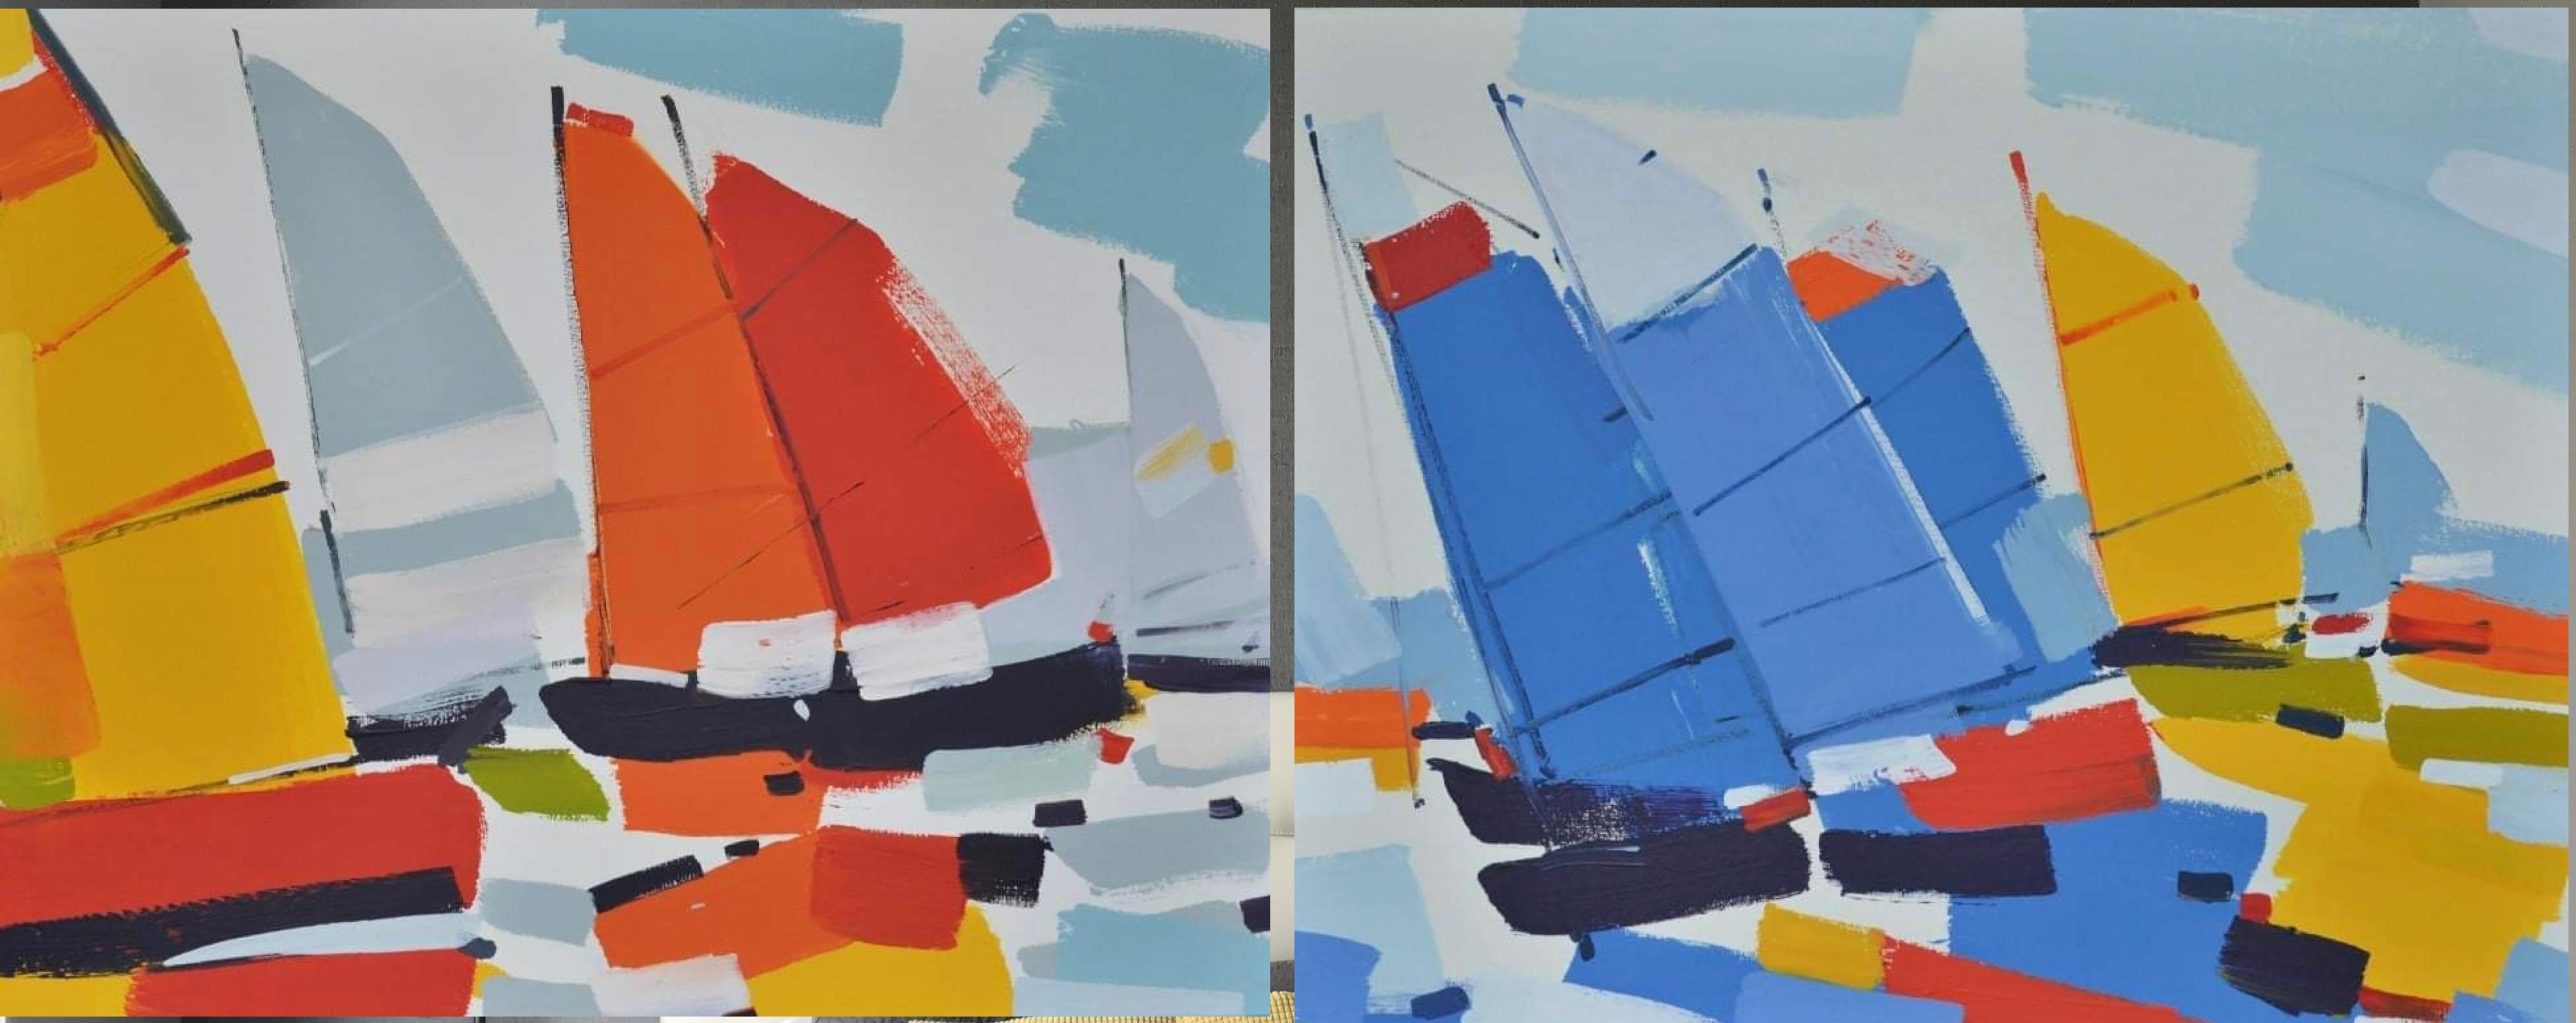 Regatta diptych (boats) - seascape made in blue, red, yellow, orange color